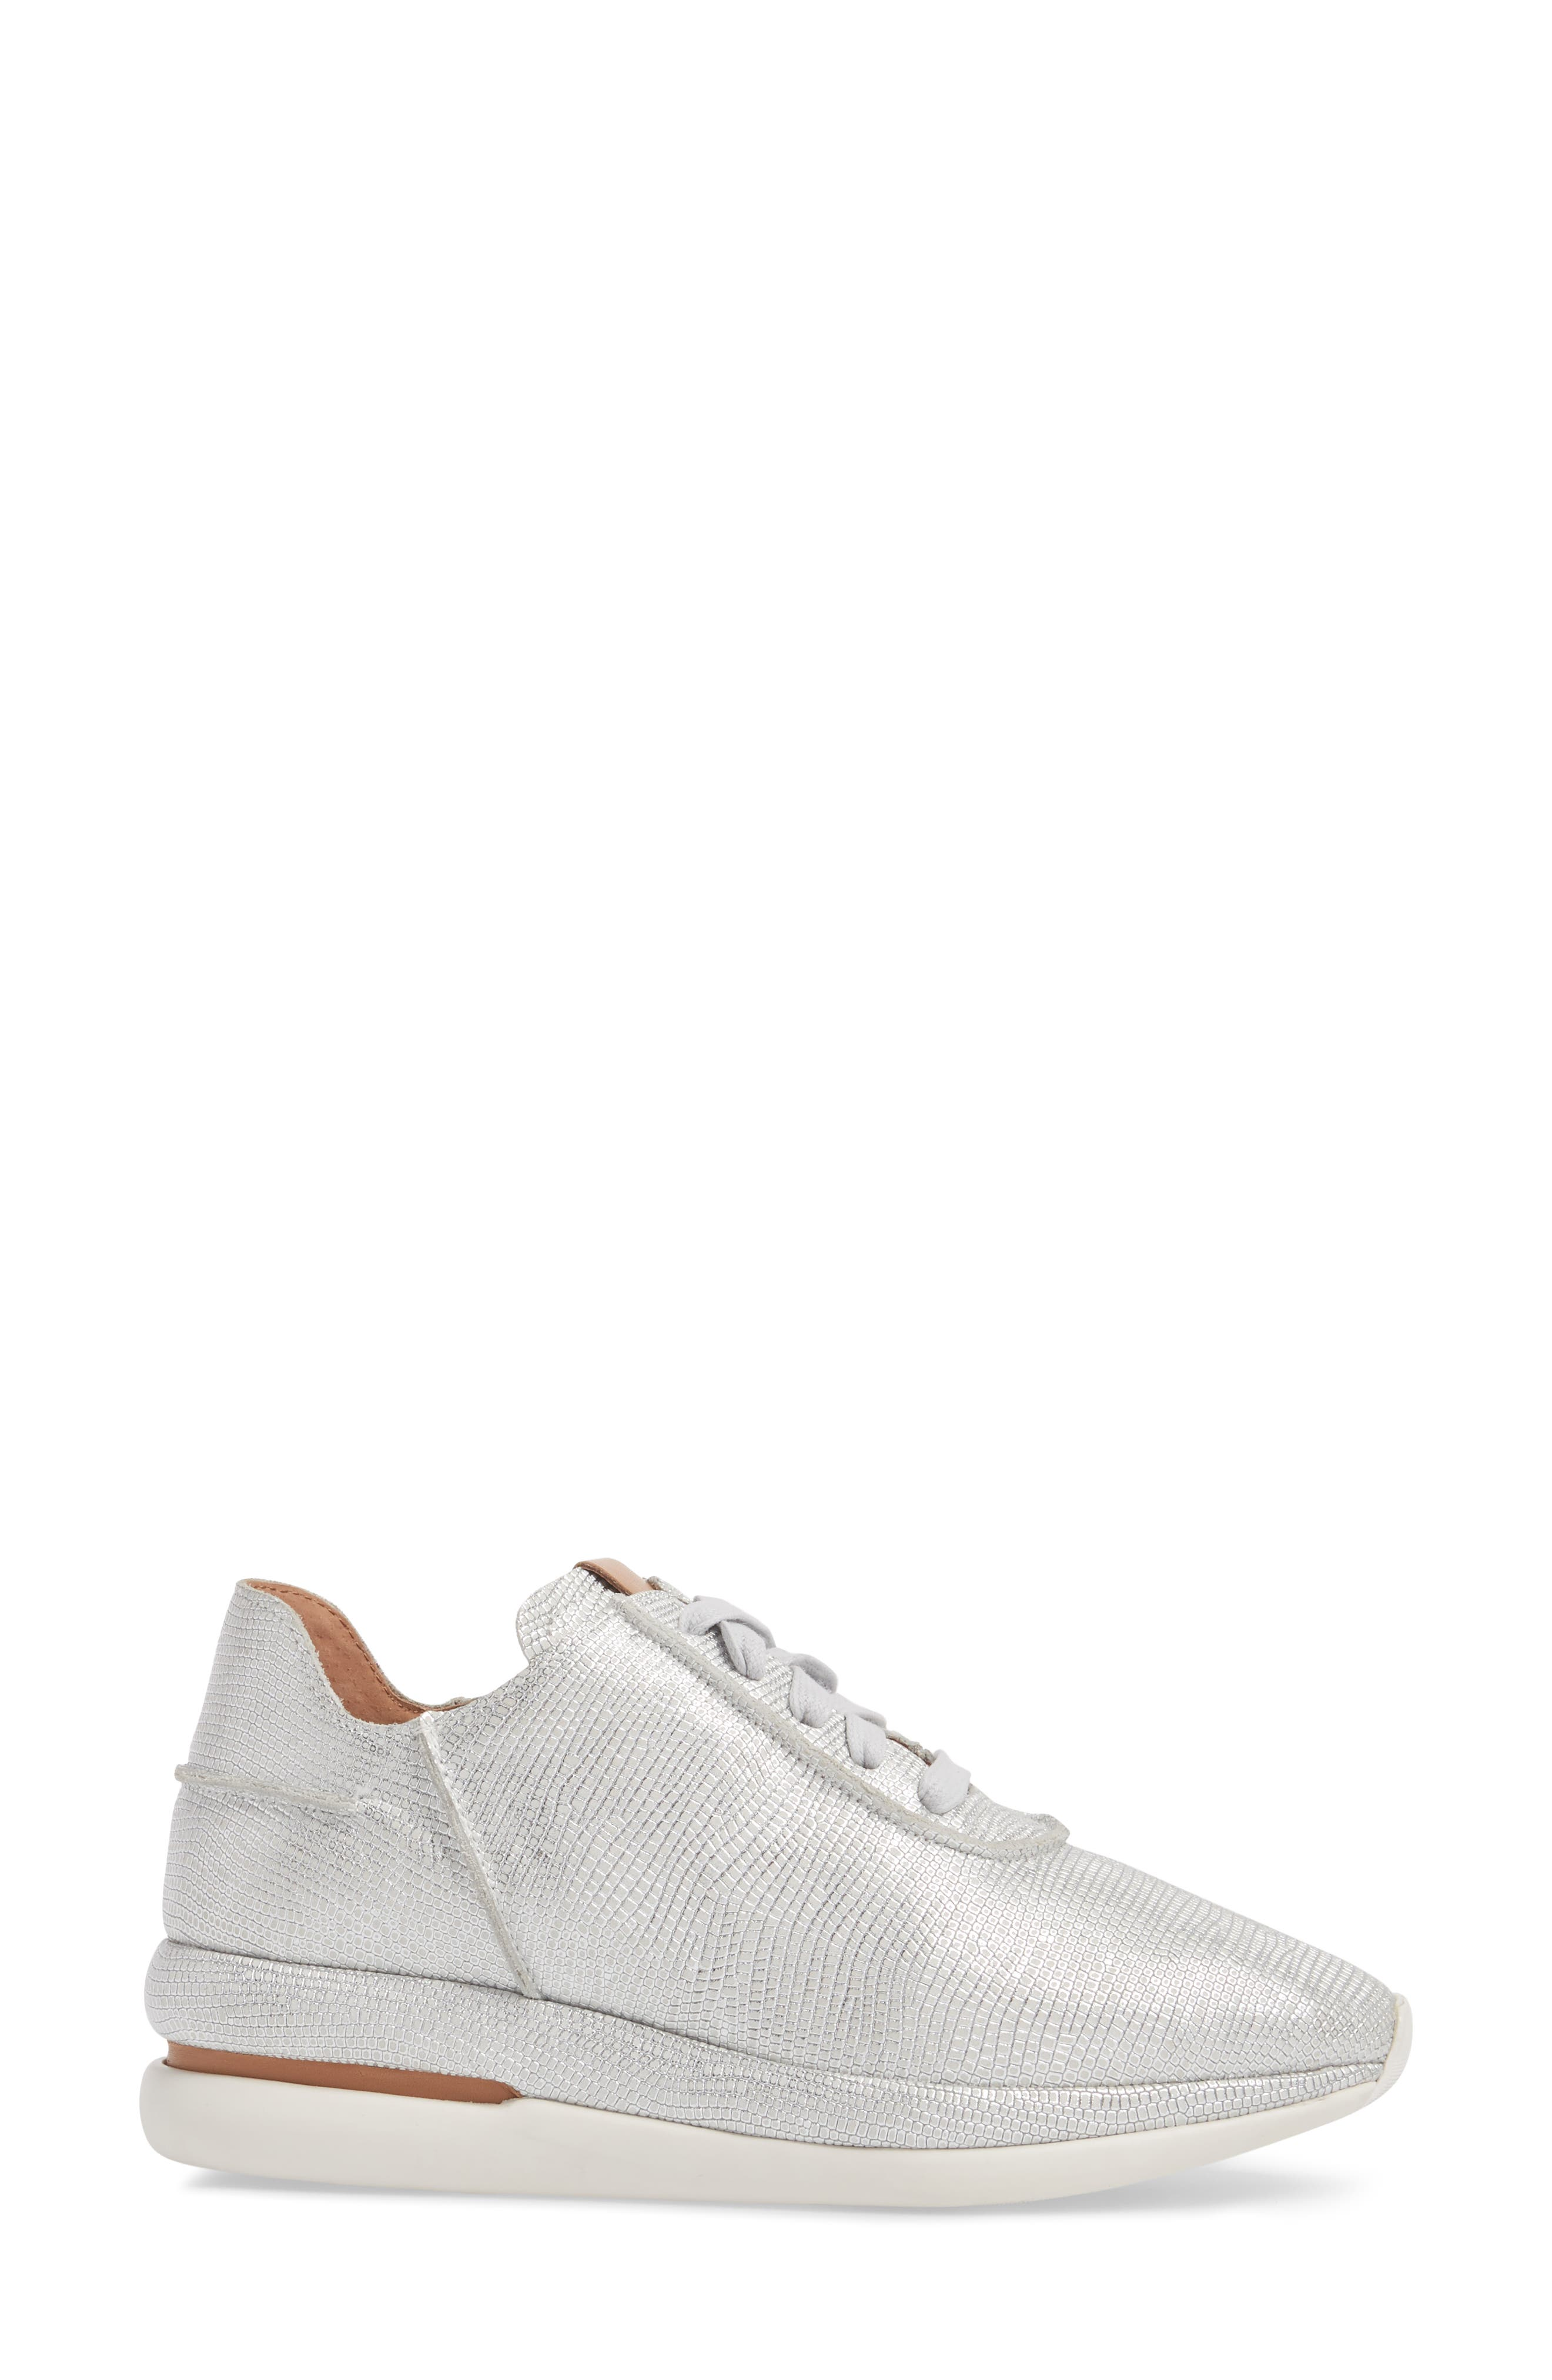 GENTLE SOULS BY KENNETH COLE, Raina Sneaker, Alternate thumbnail 3, color, WHITE/ SILVER LEATHER